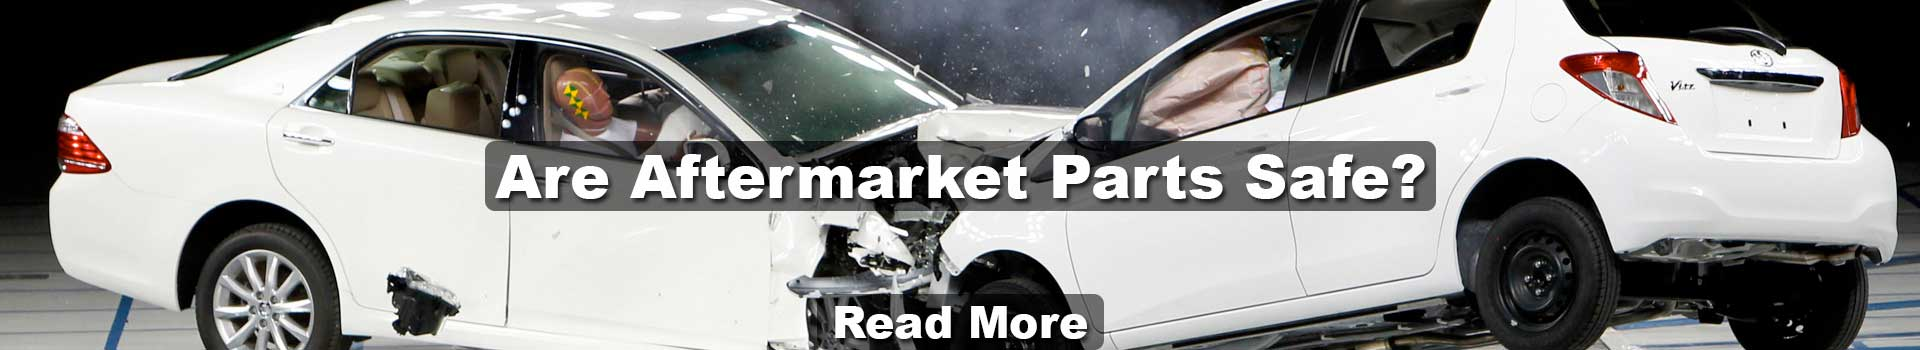 Aftermarket Parts Safety